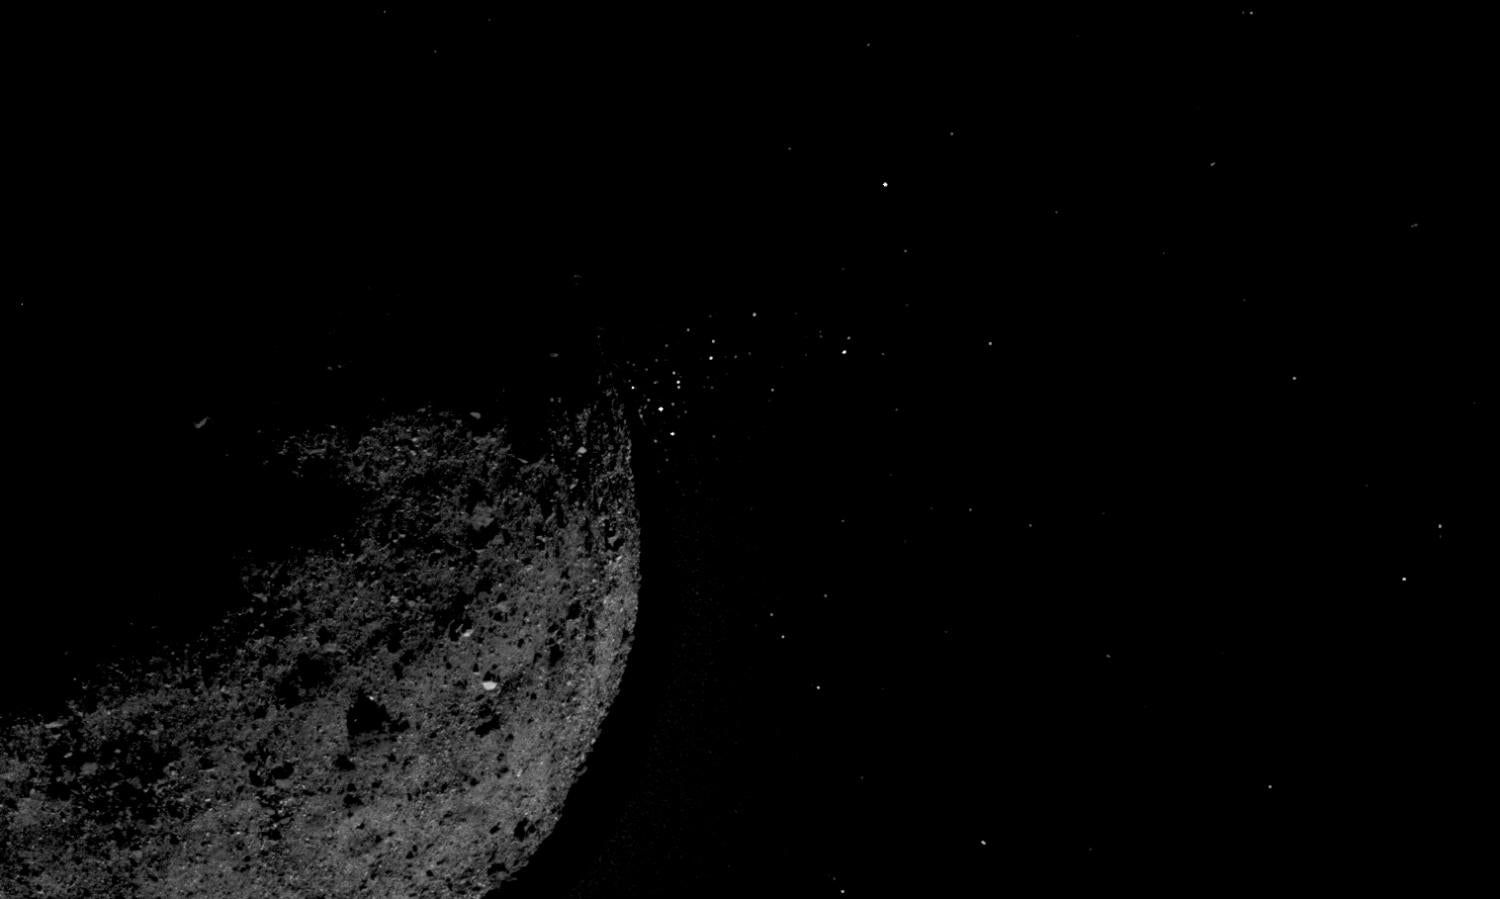 Image of the asteroid Bennu with small bits of material jumping off into space.